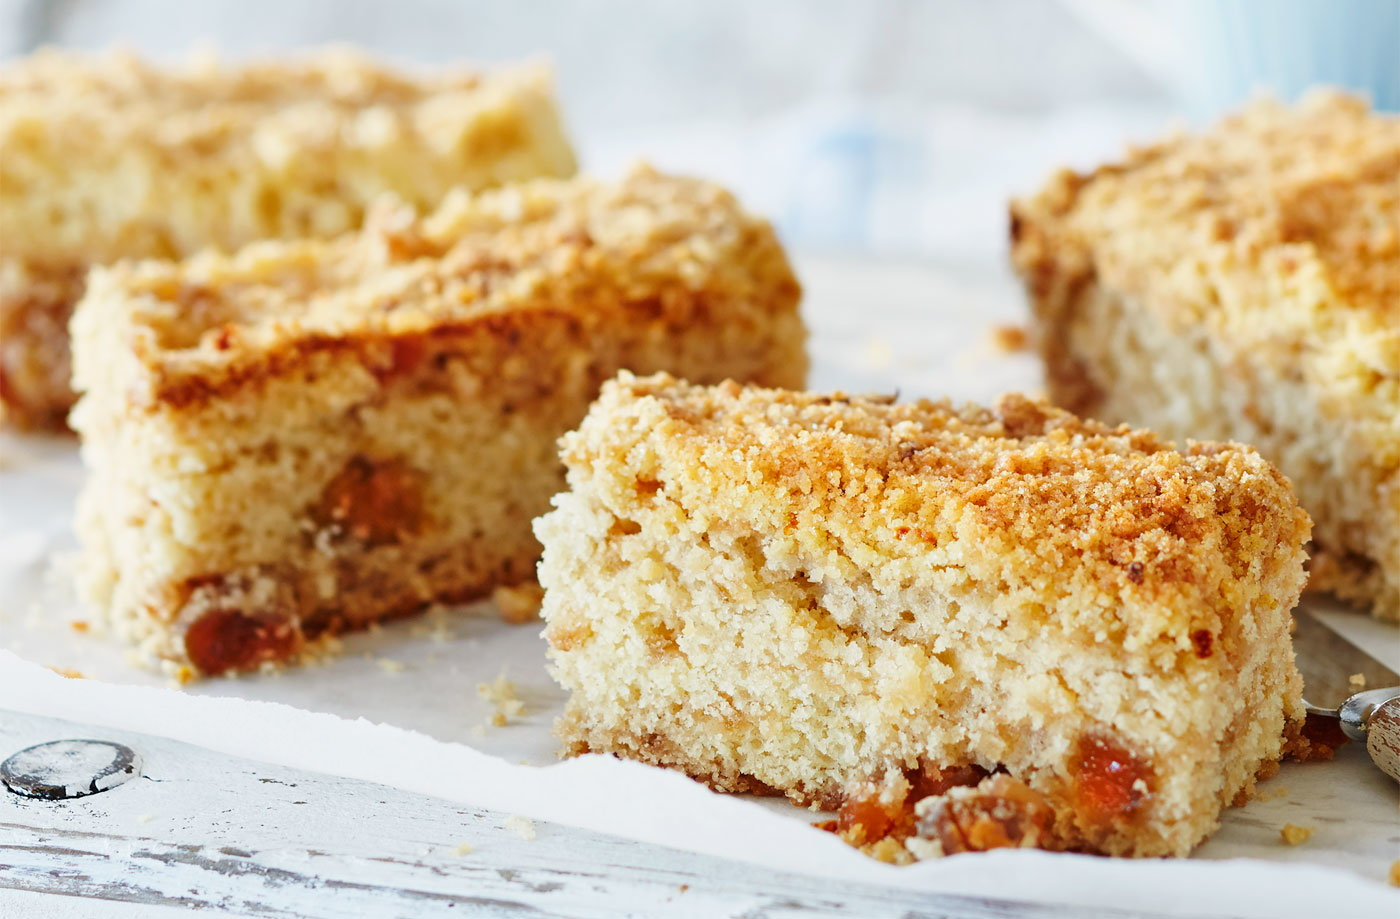 Gooseberry and crumble cake bars